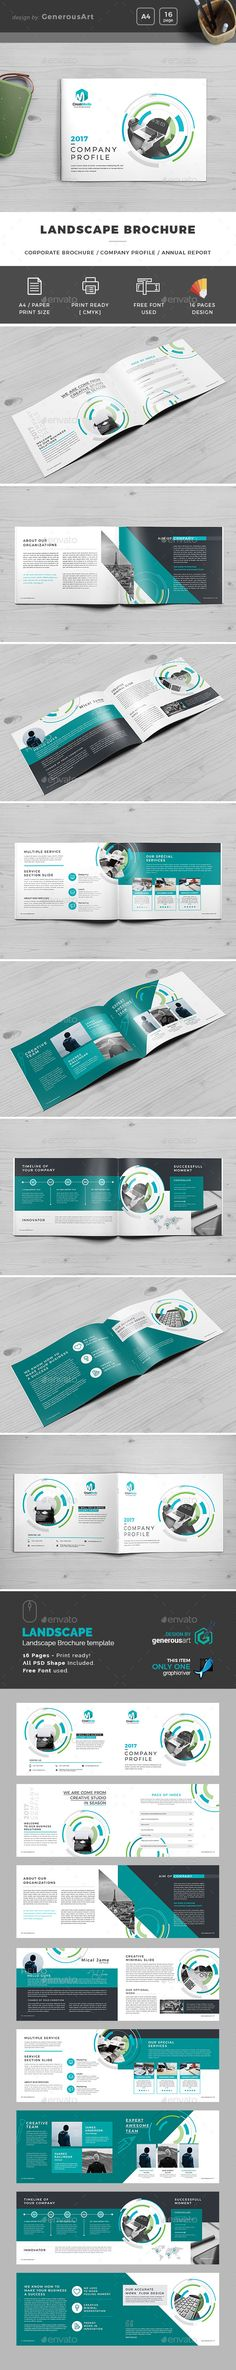 30 Free Brochure Templates for Download Free brochure, Brochure - landscape brochure